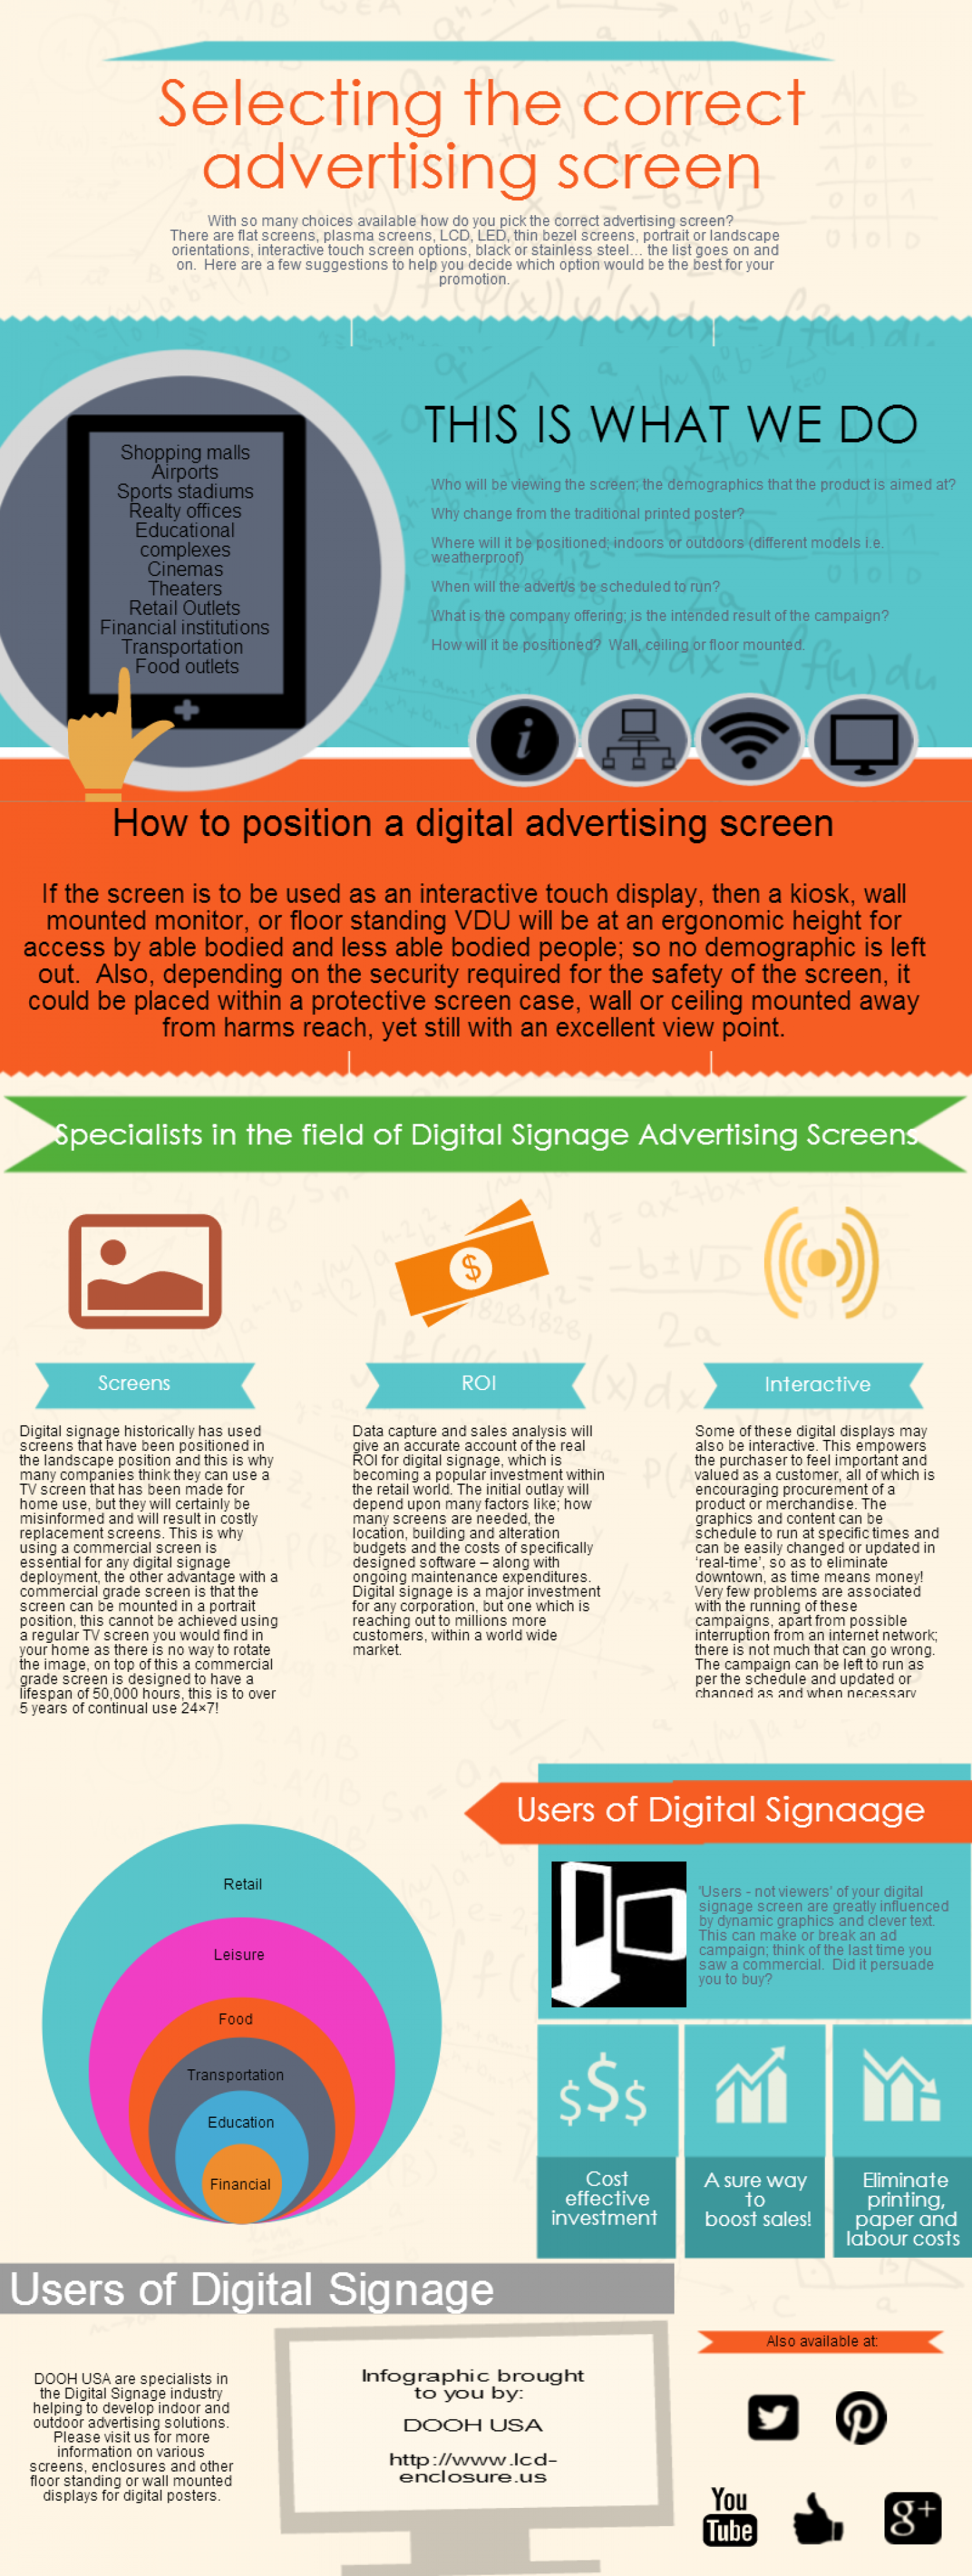 Selecting the Correct Advertising Screen Infographic